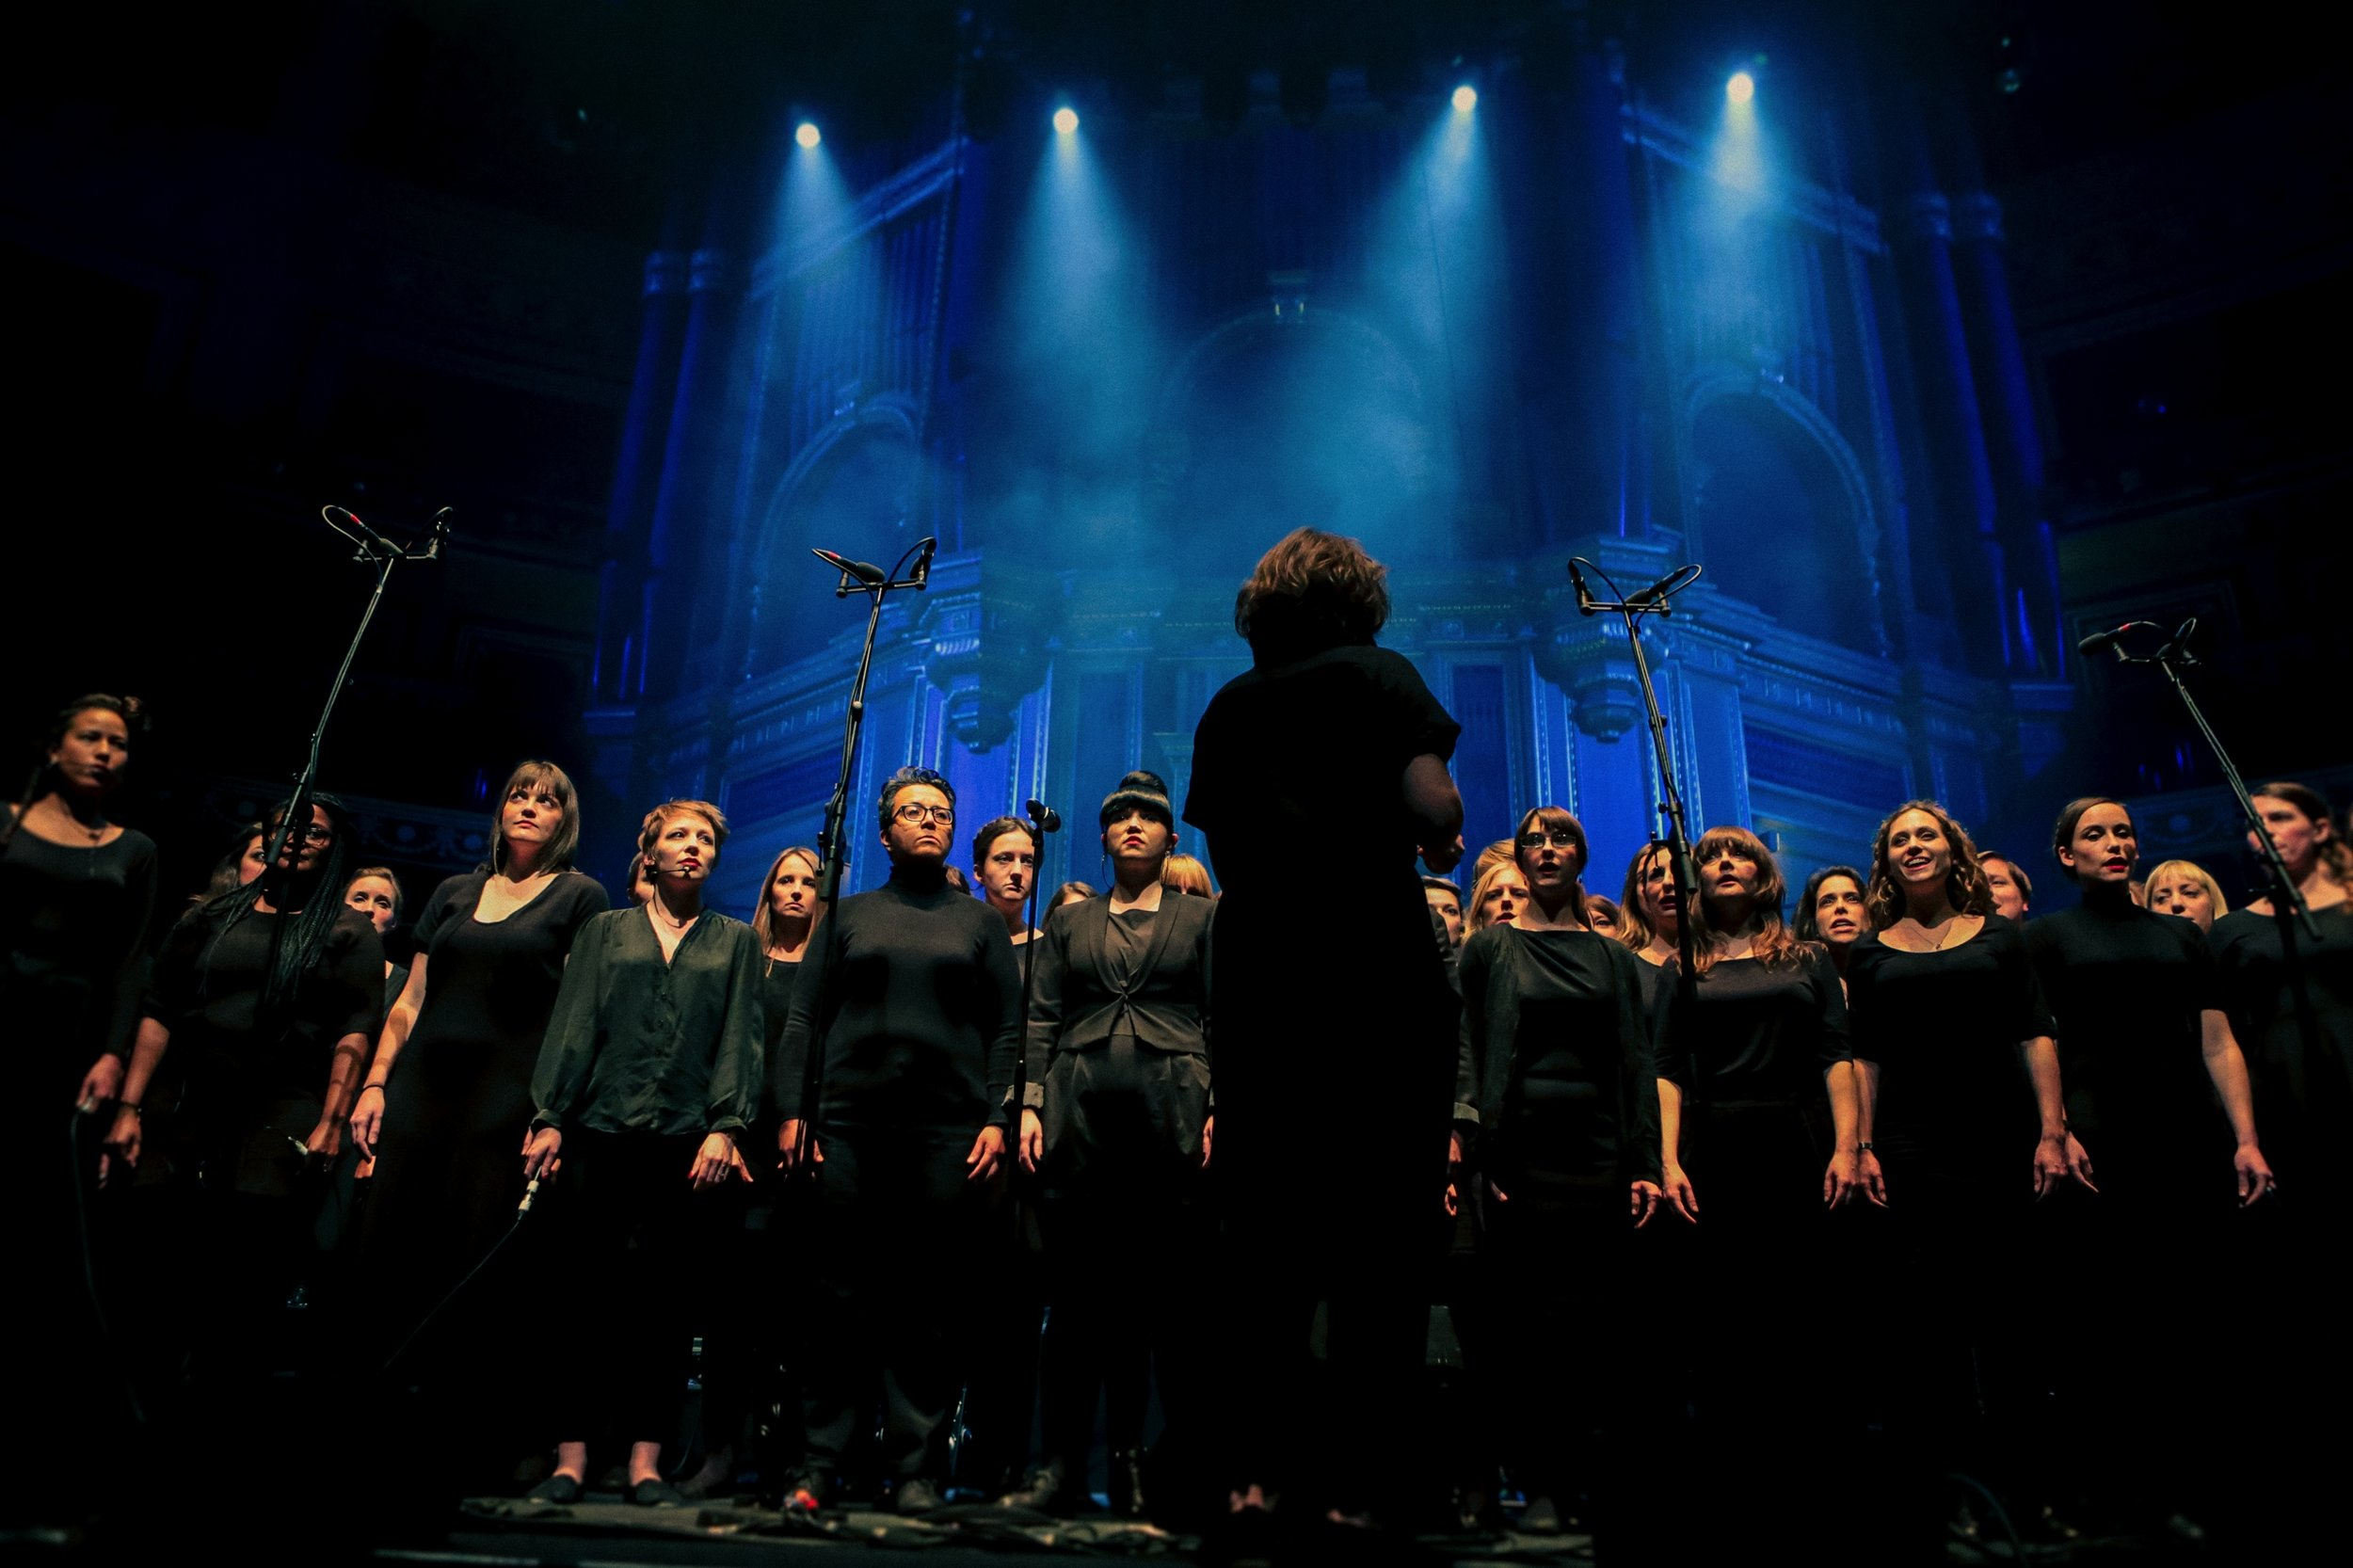 Lips Choir sing with Goldfrapp at The Royal Albert Hall